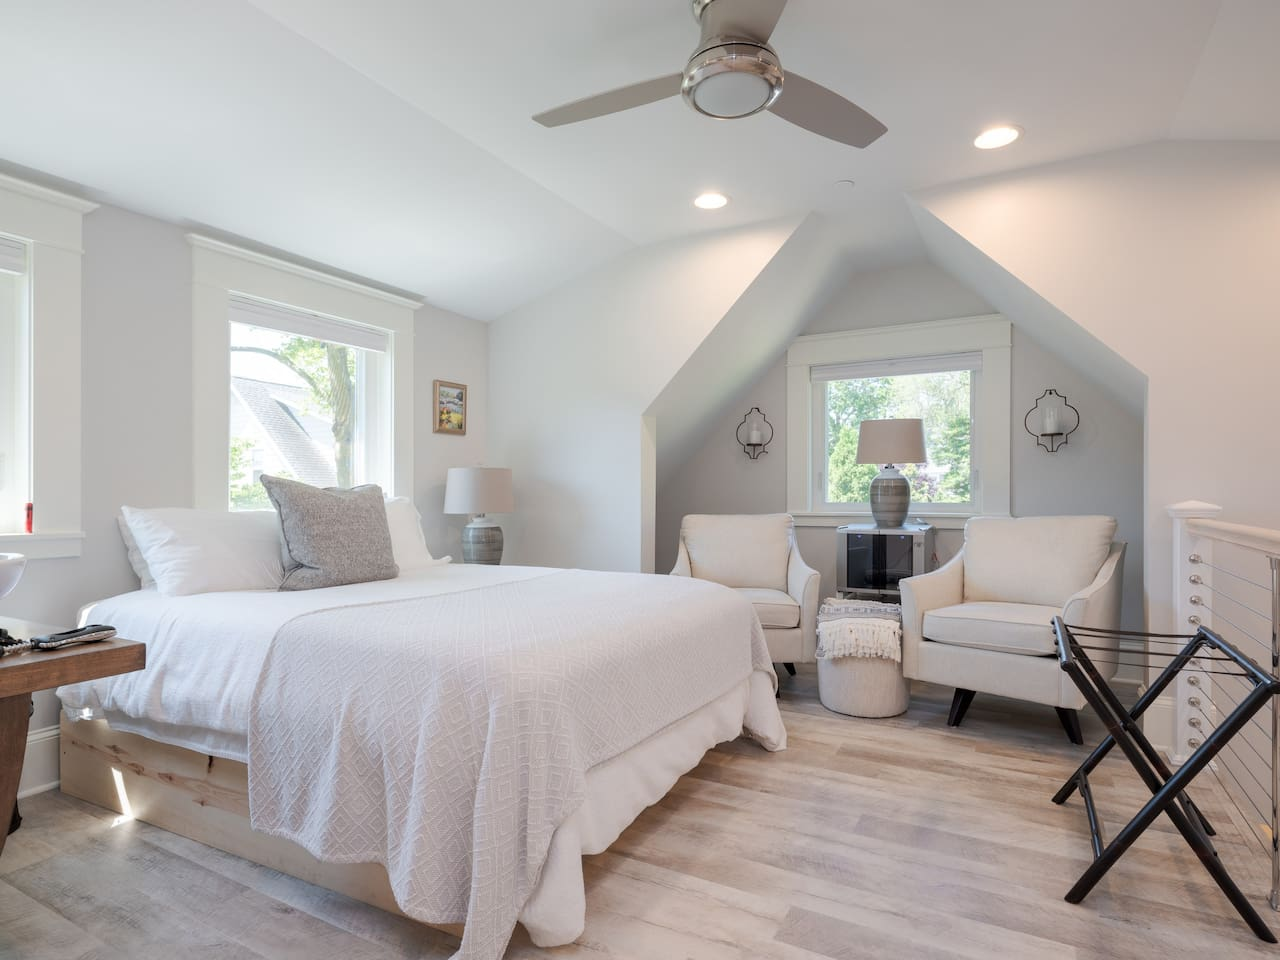 Designed and furnished with a spa-like setting in mind. Total comfort for a delightful weekend getaway in Annapolis!